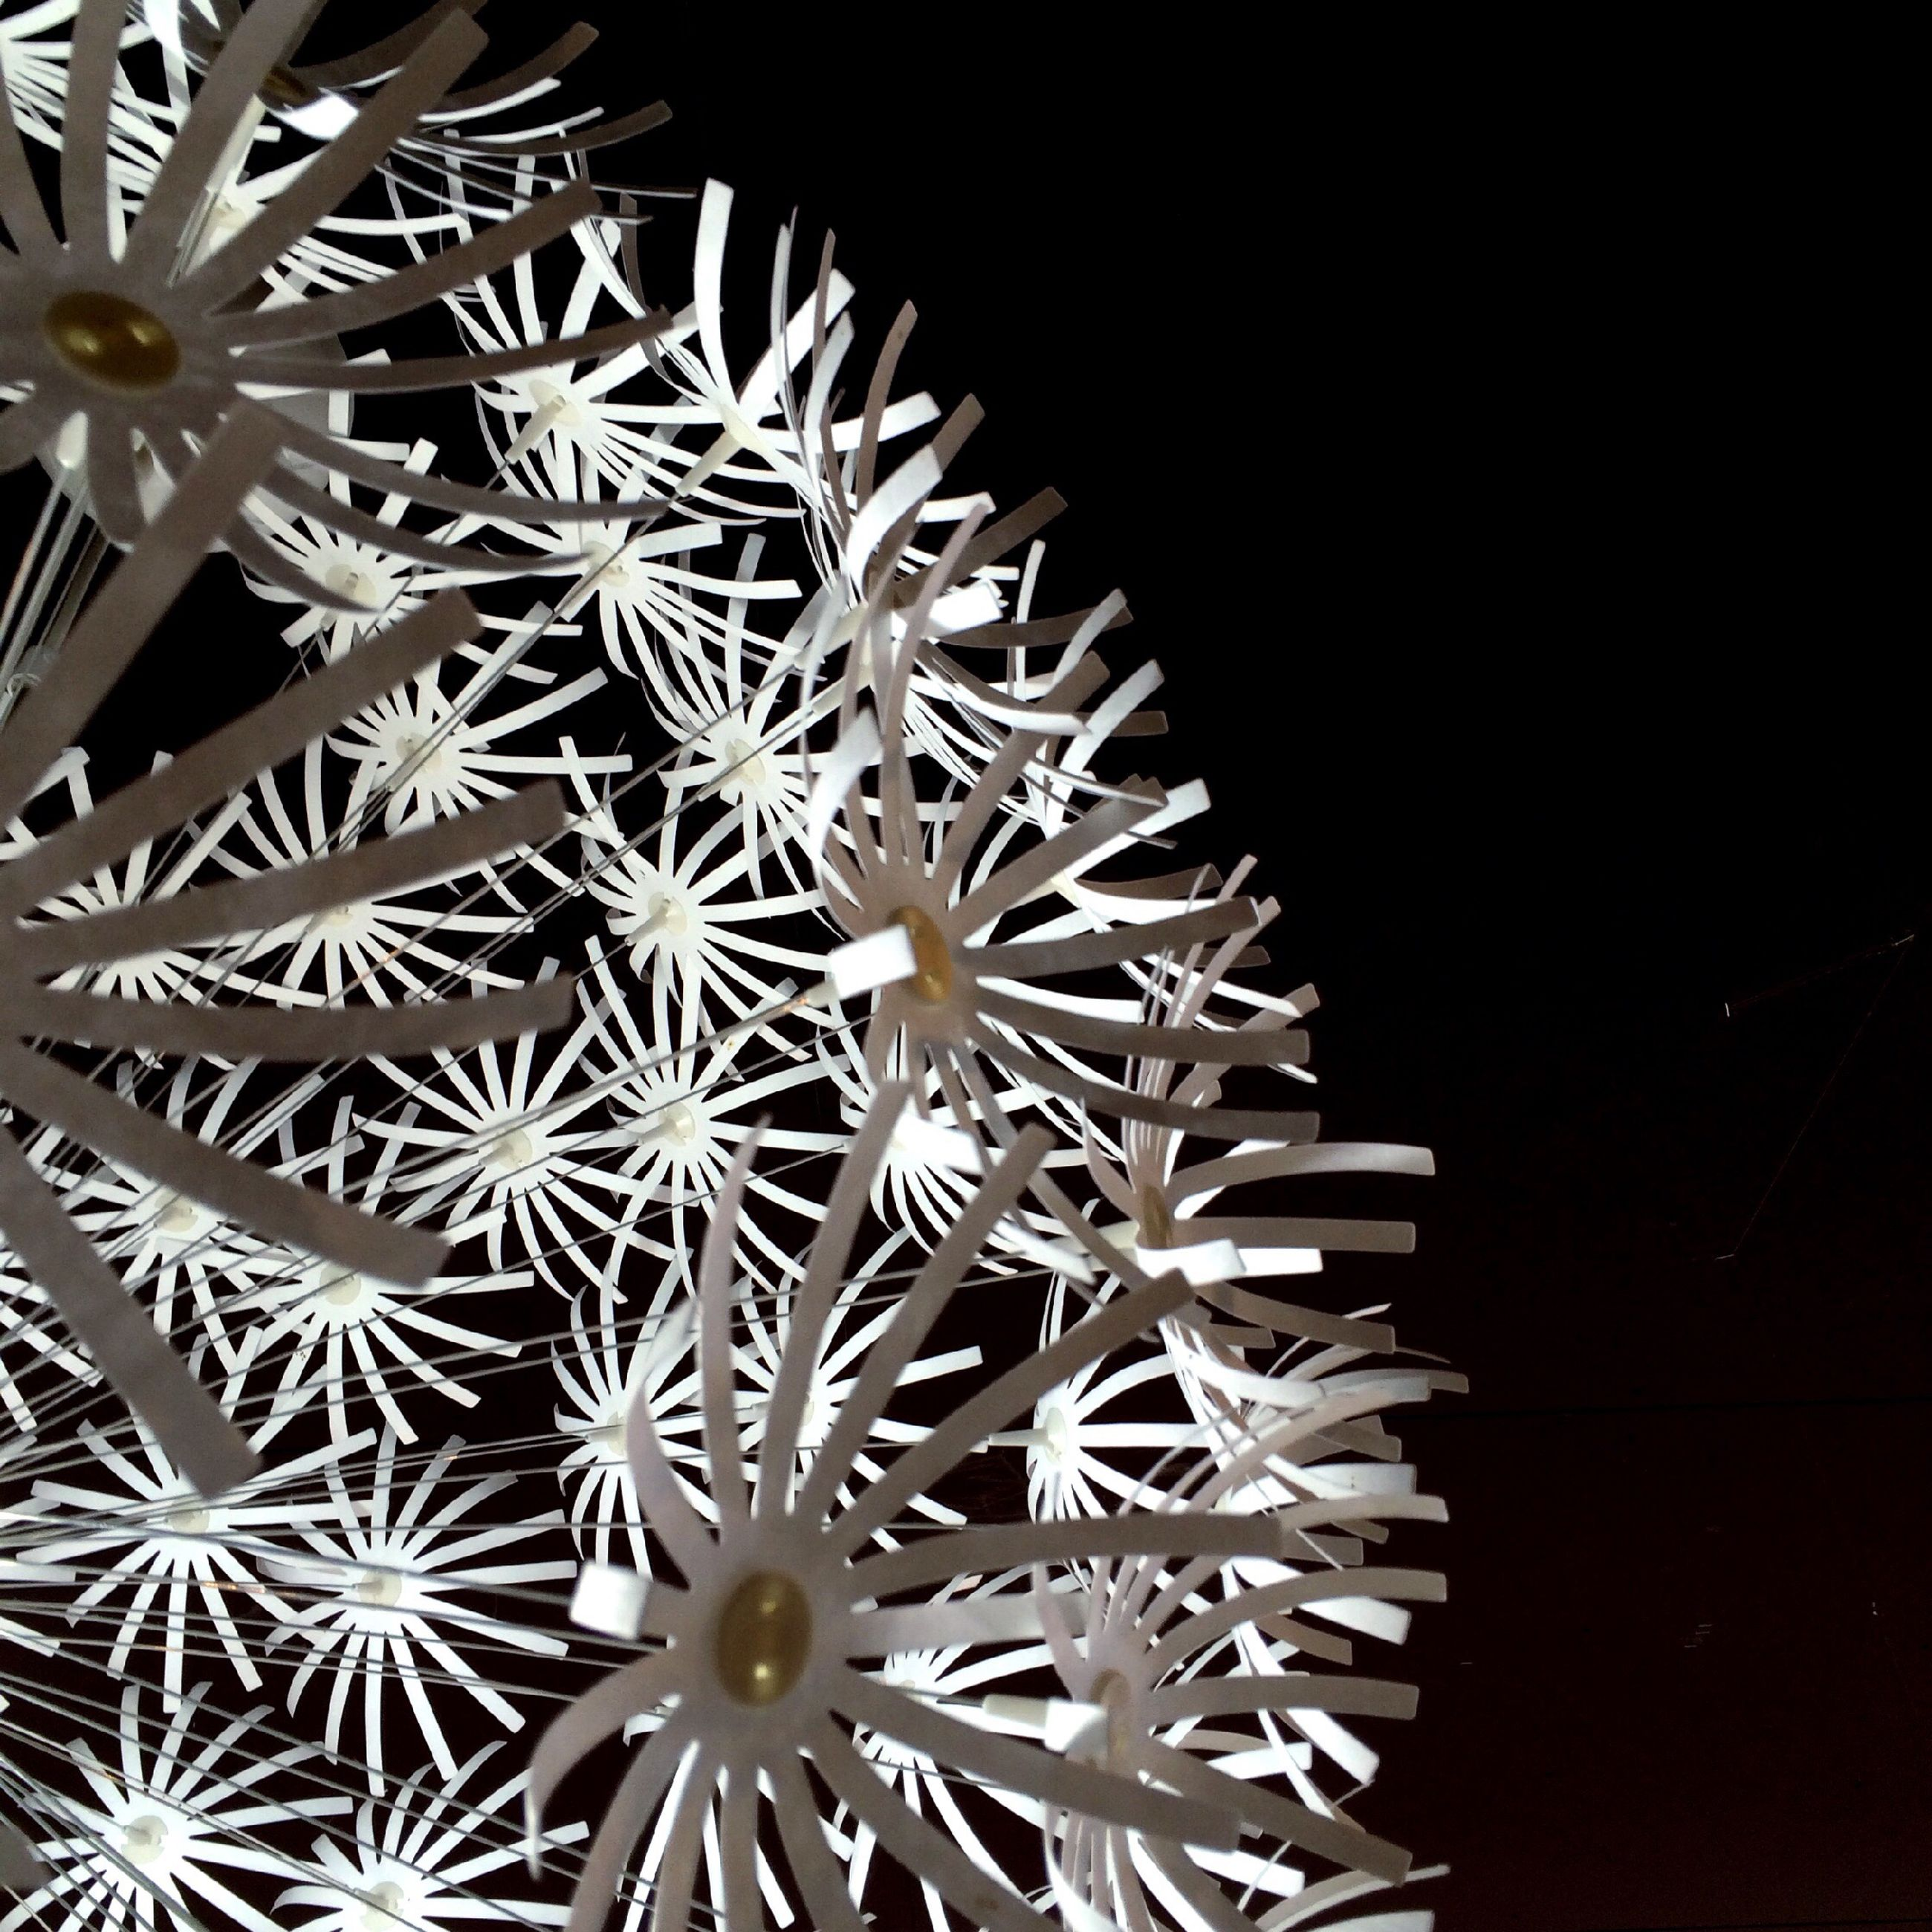 night, flower, white color, growth, close-up, nature, low angle view, fragility, plant, beauty in nature, no people, copy space, outdoors, clear sky, black background, illuminated, freshness, winter, tree